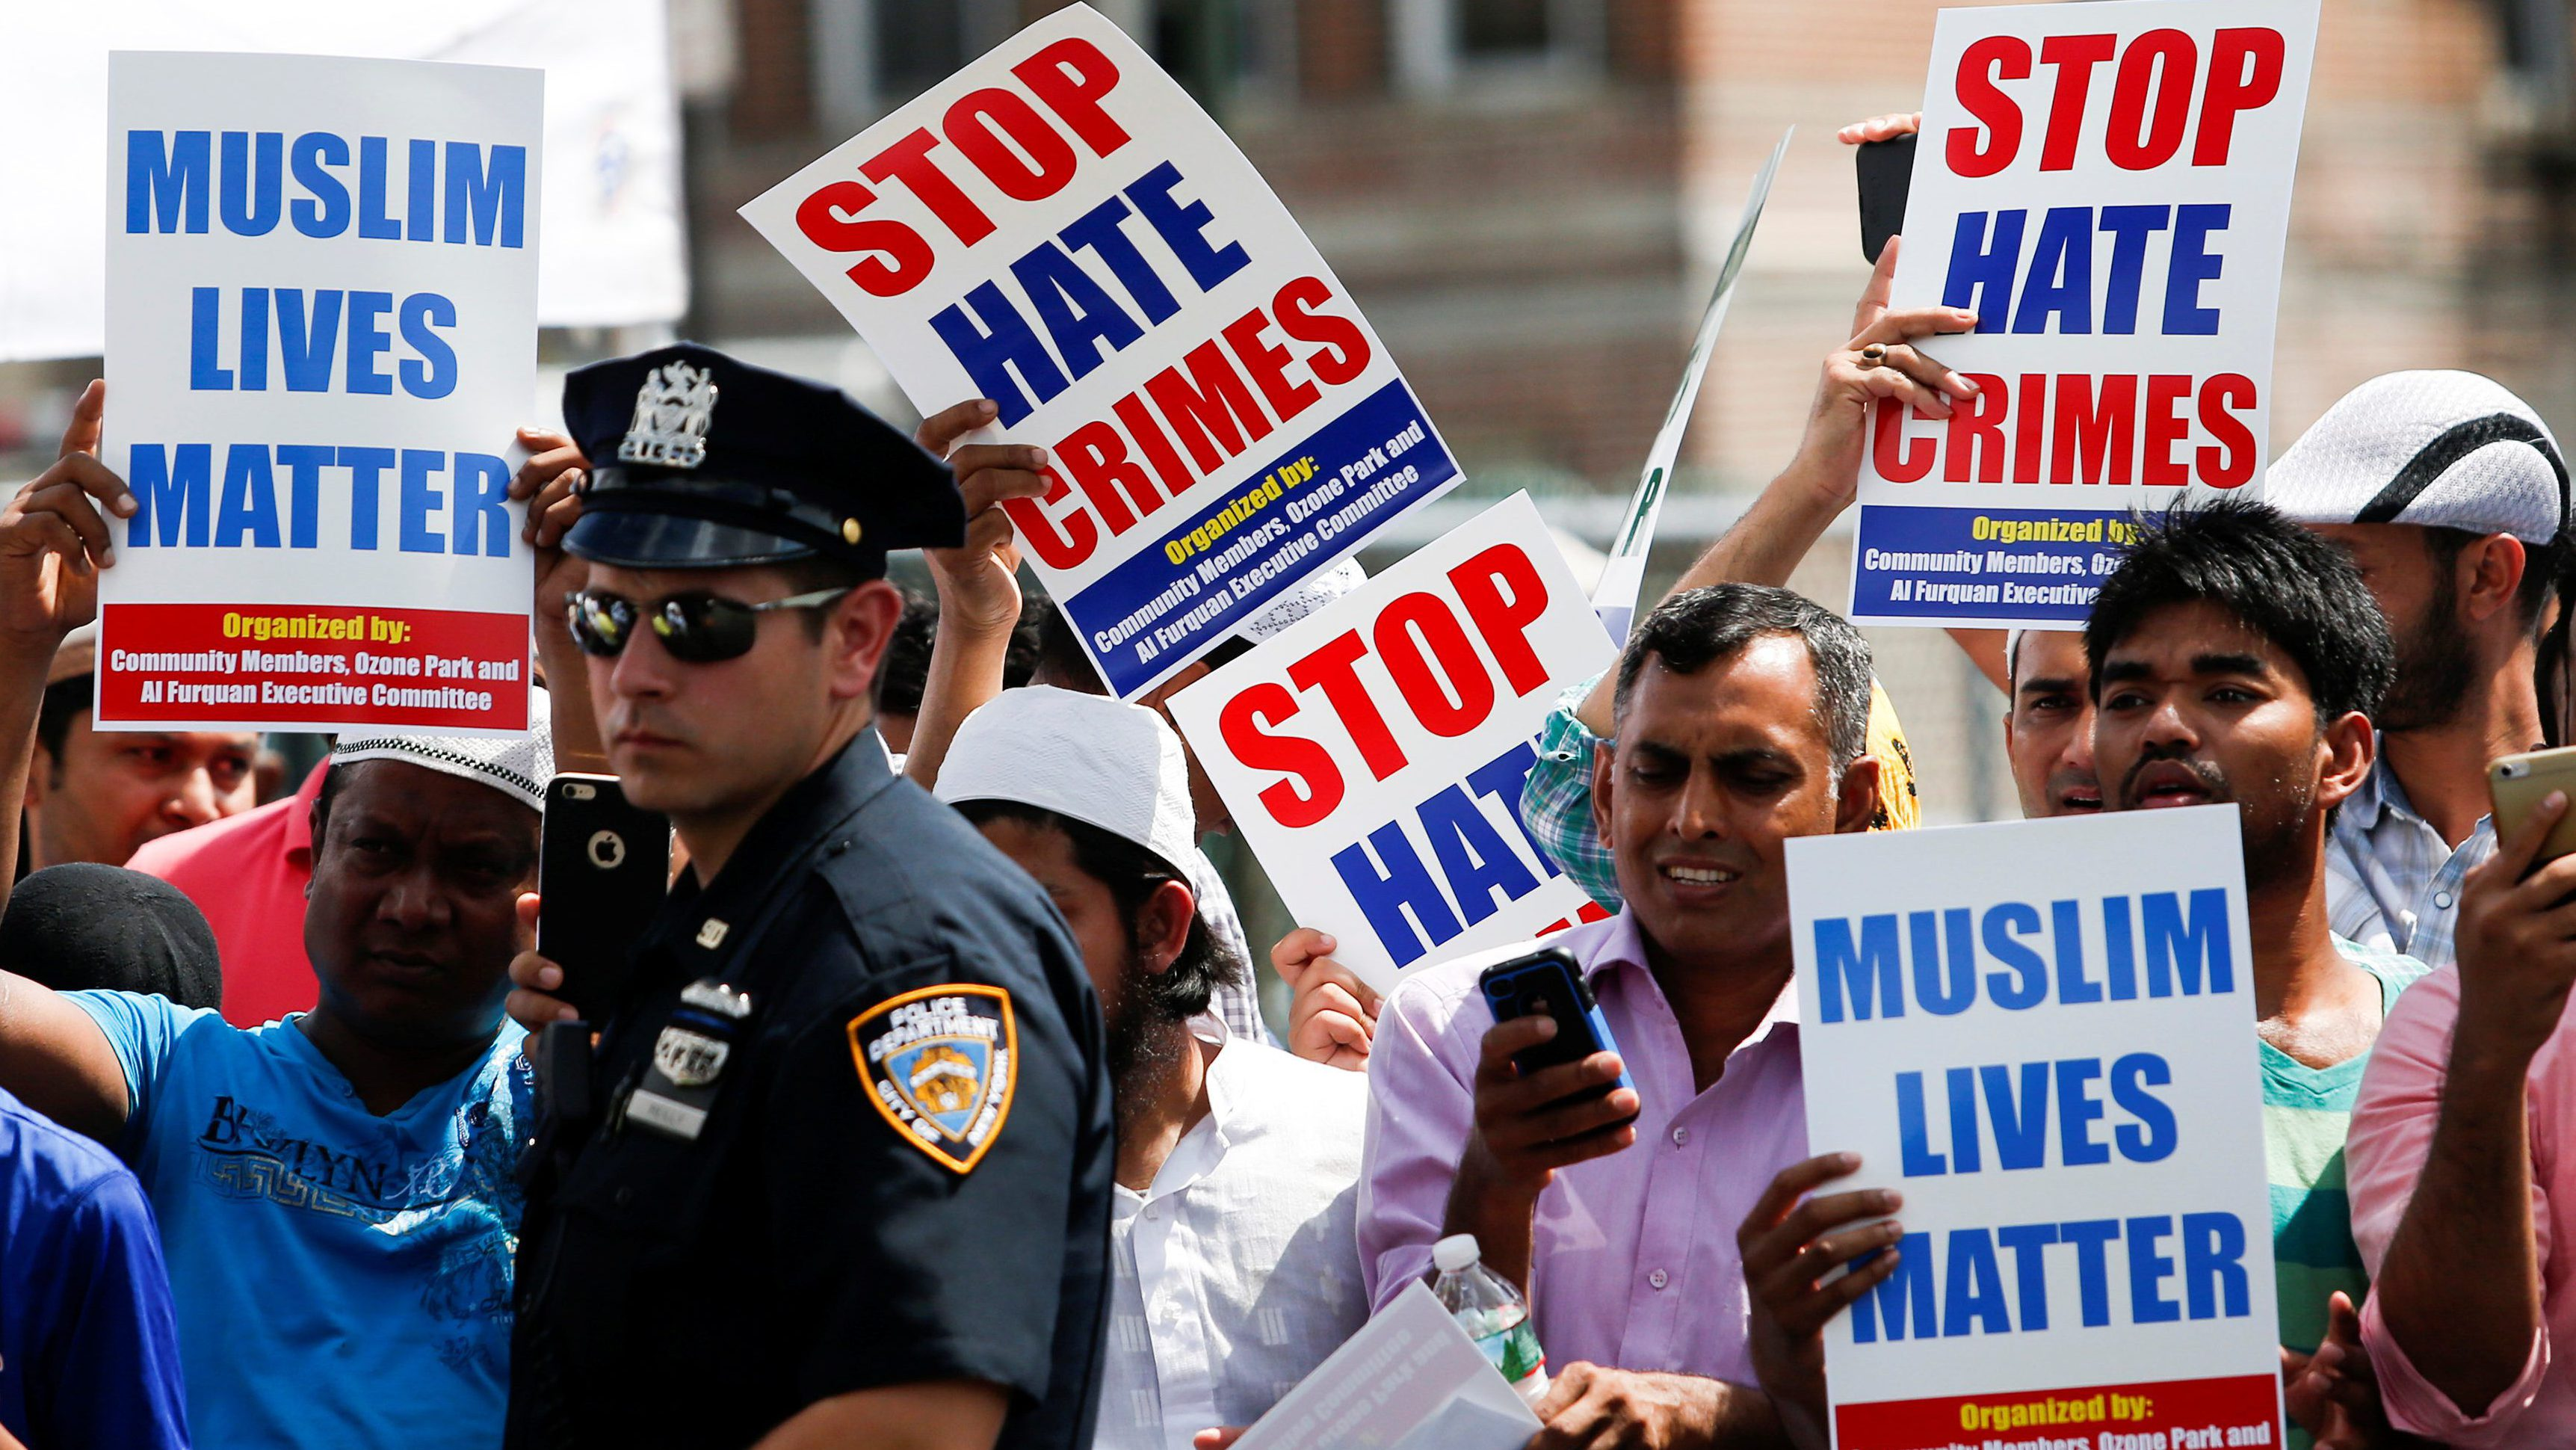 Community members take part in a protest to demand stop hate crime during the funeral service of Imam Maulama Akonjee, and Thara Uddin in the Queens borough of New York City, August 15, 2016.